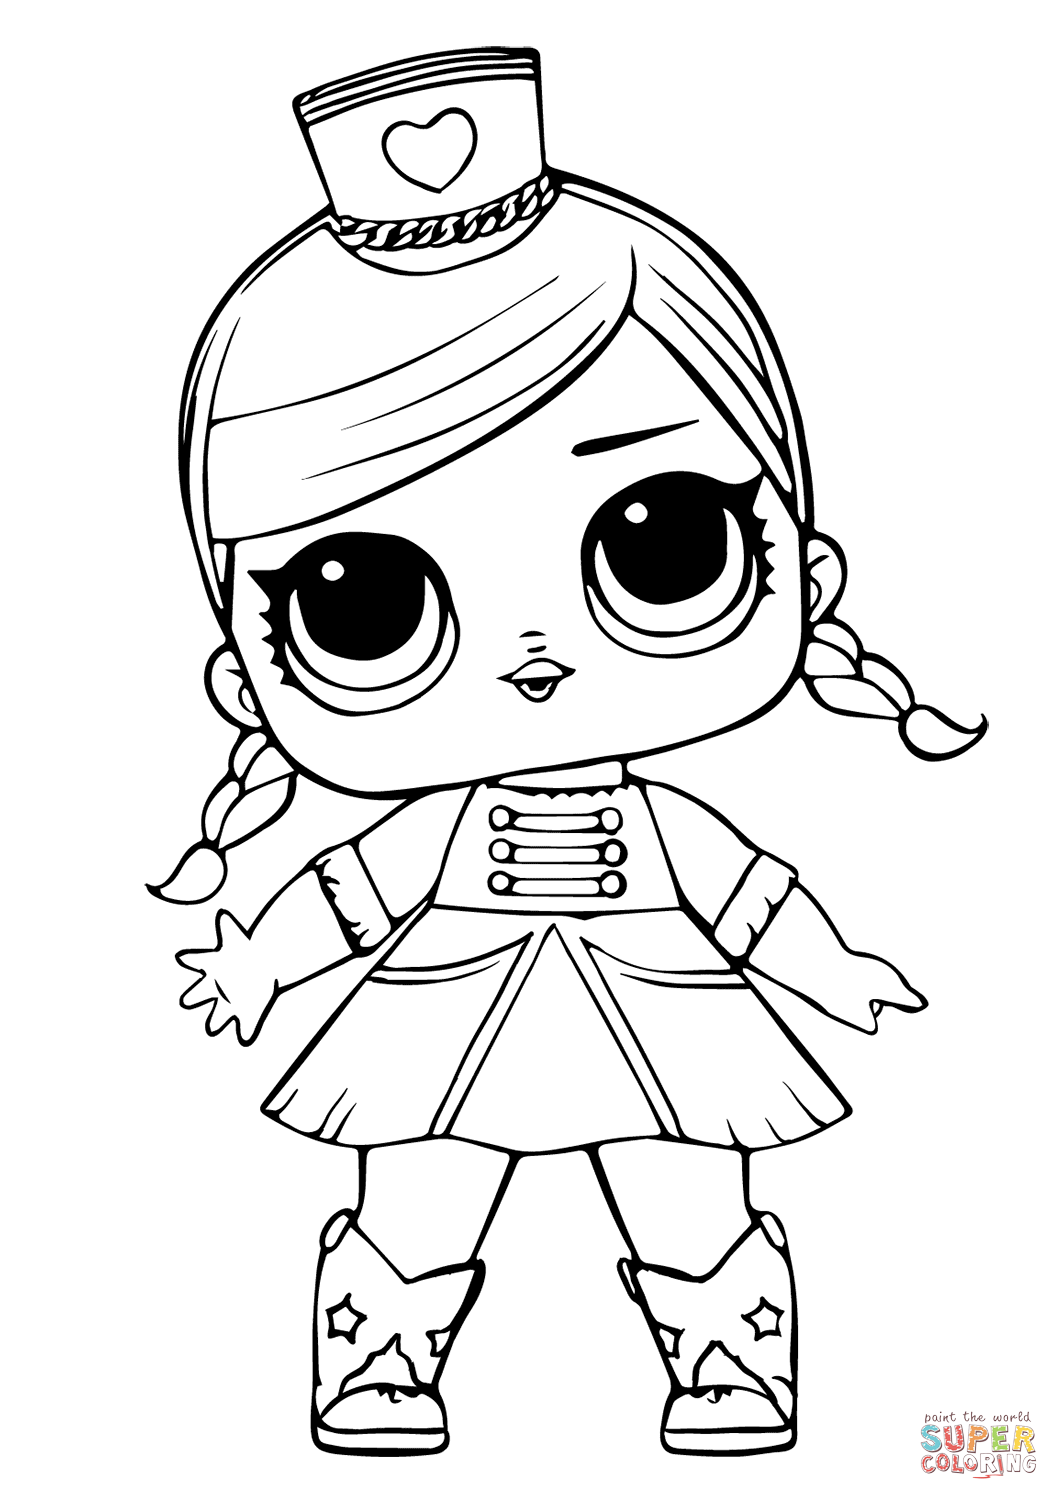 Lol Doll Majorette Super Coloring Unicorn Coloring Pages Coloring Pages Lol Dolls